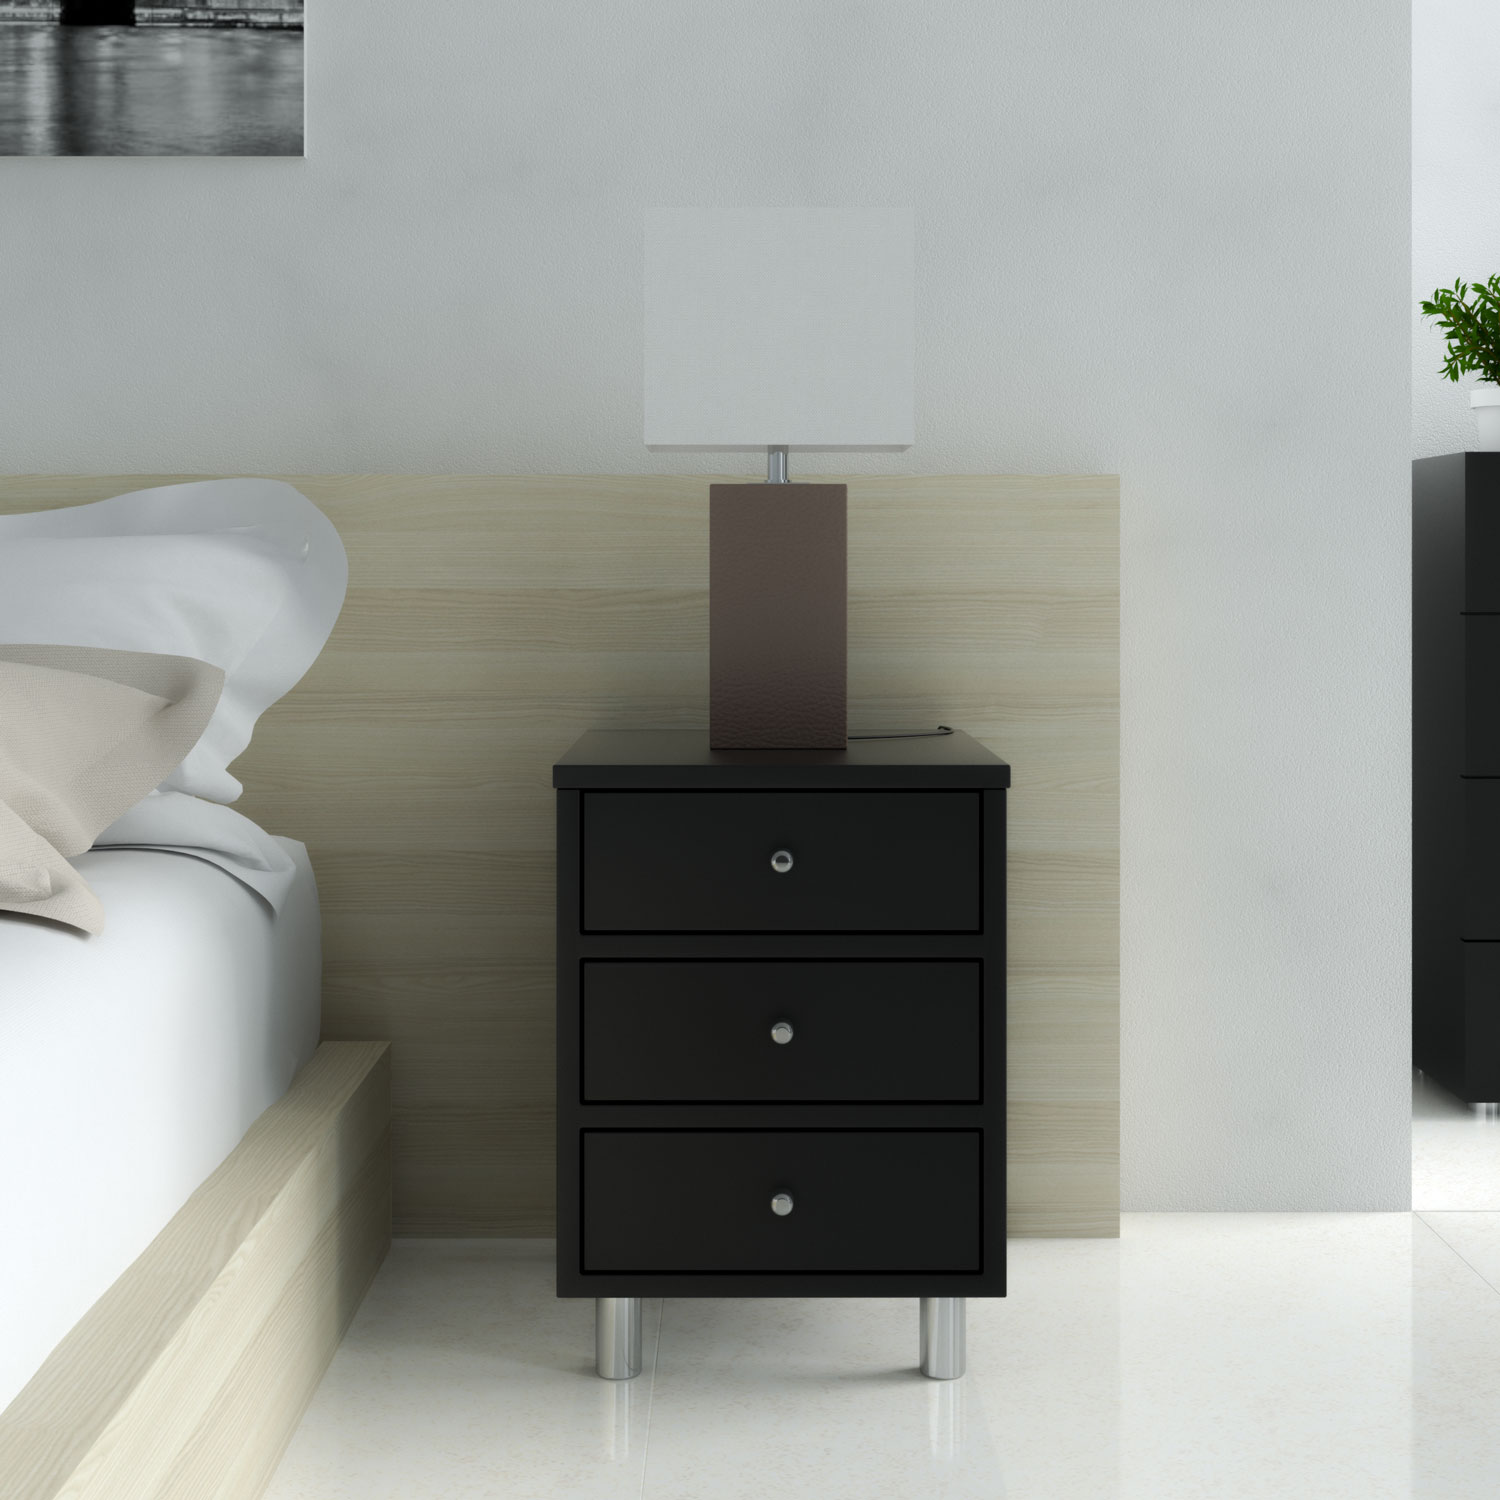 Decorate nightstand using table lamp